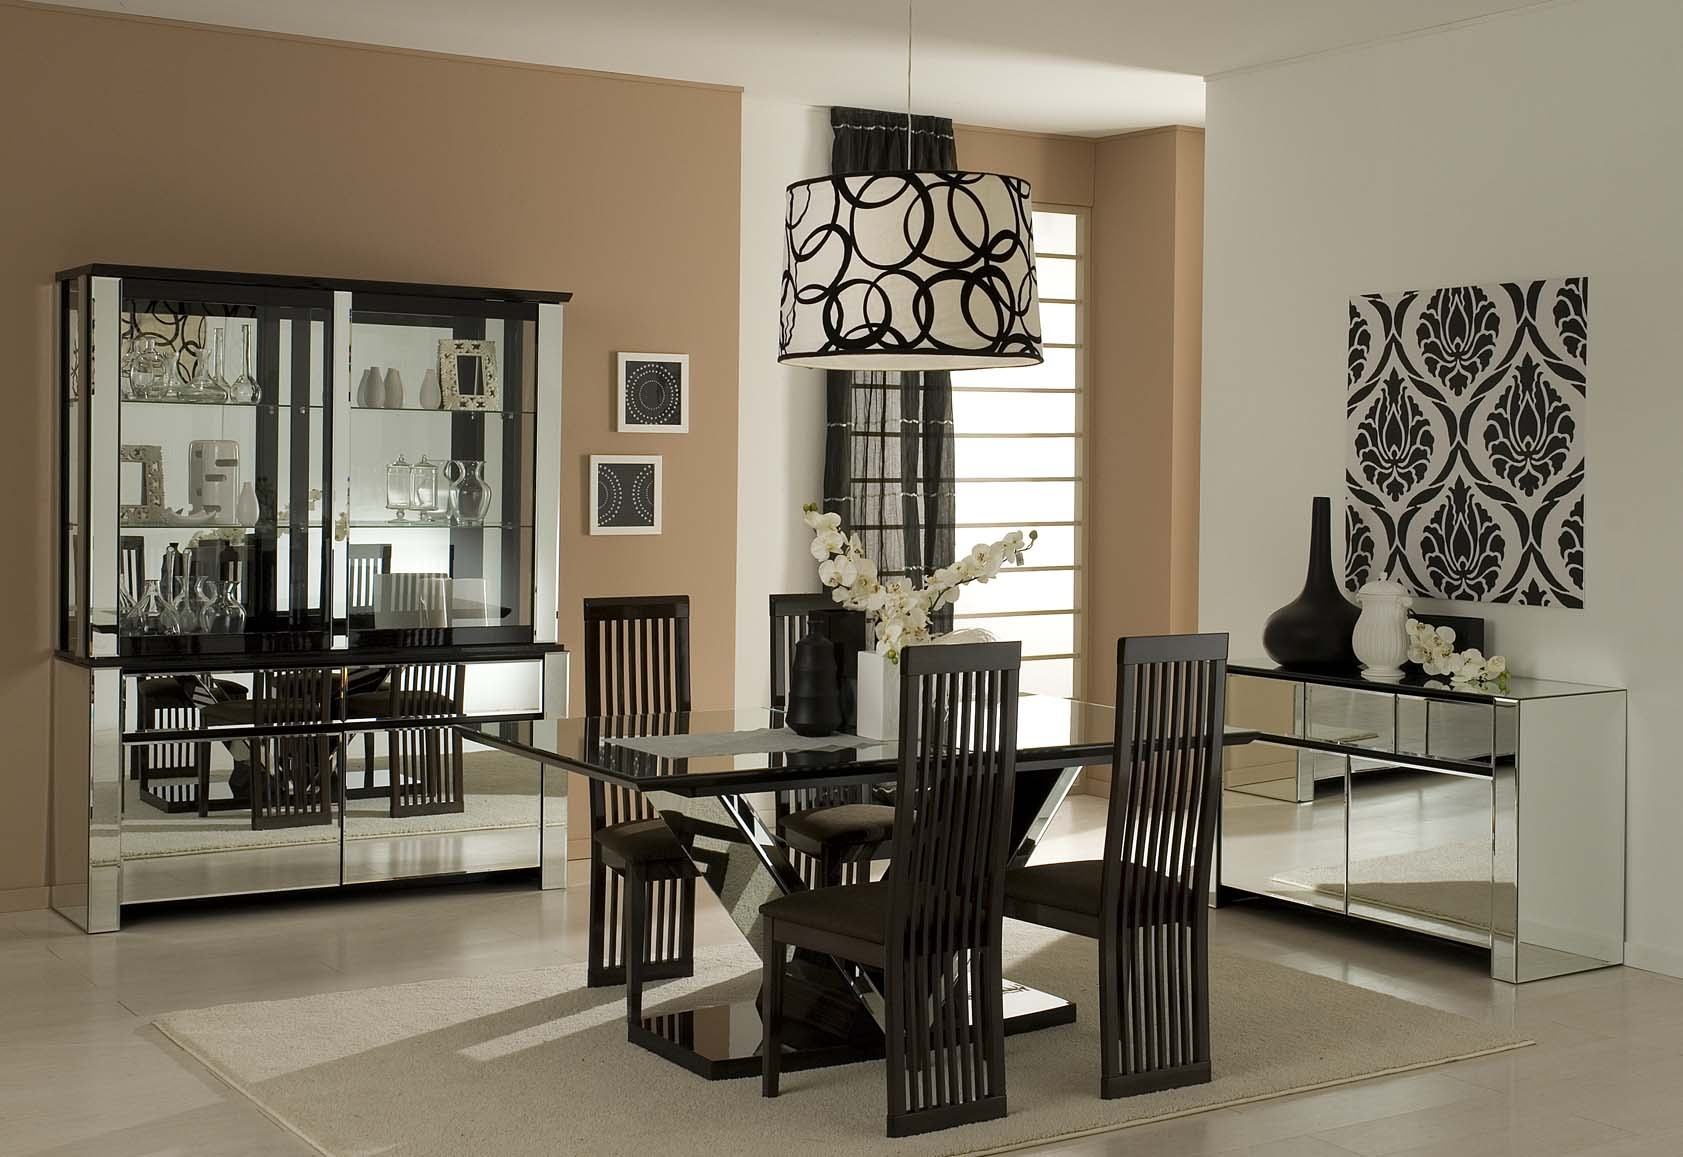 Decorating dining rooms Photo - 1